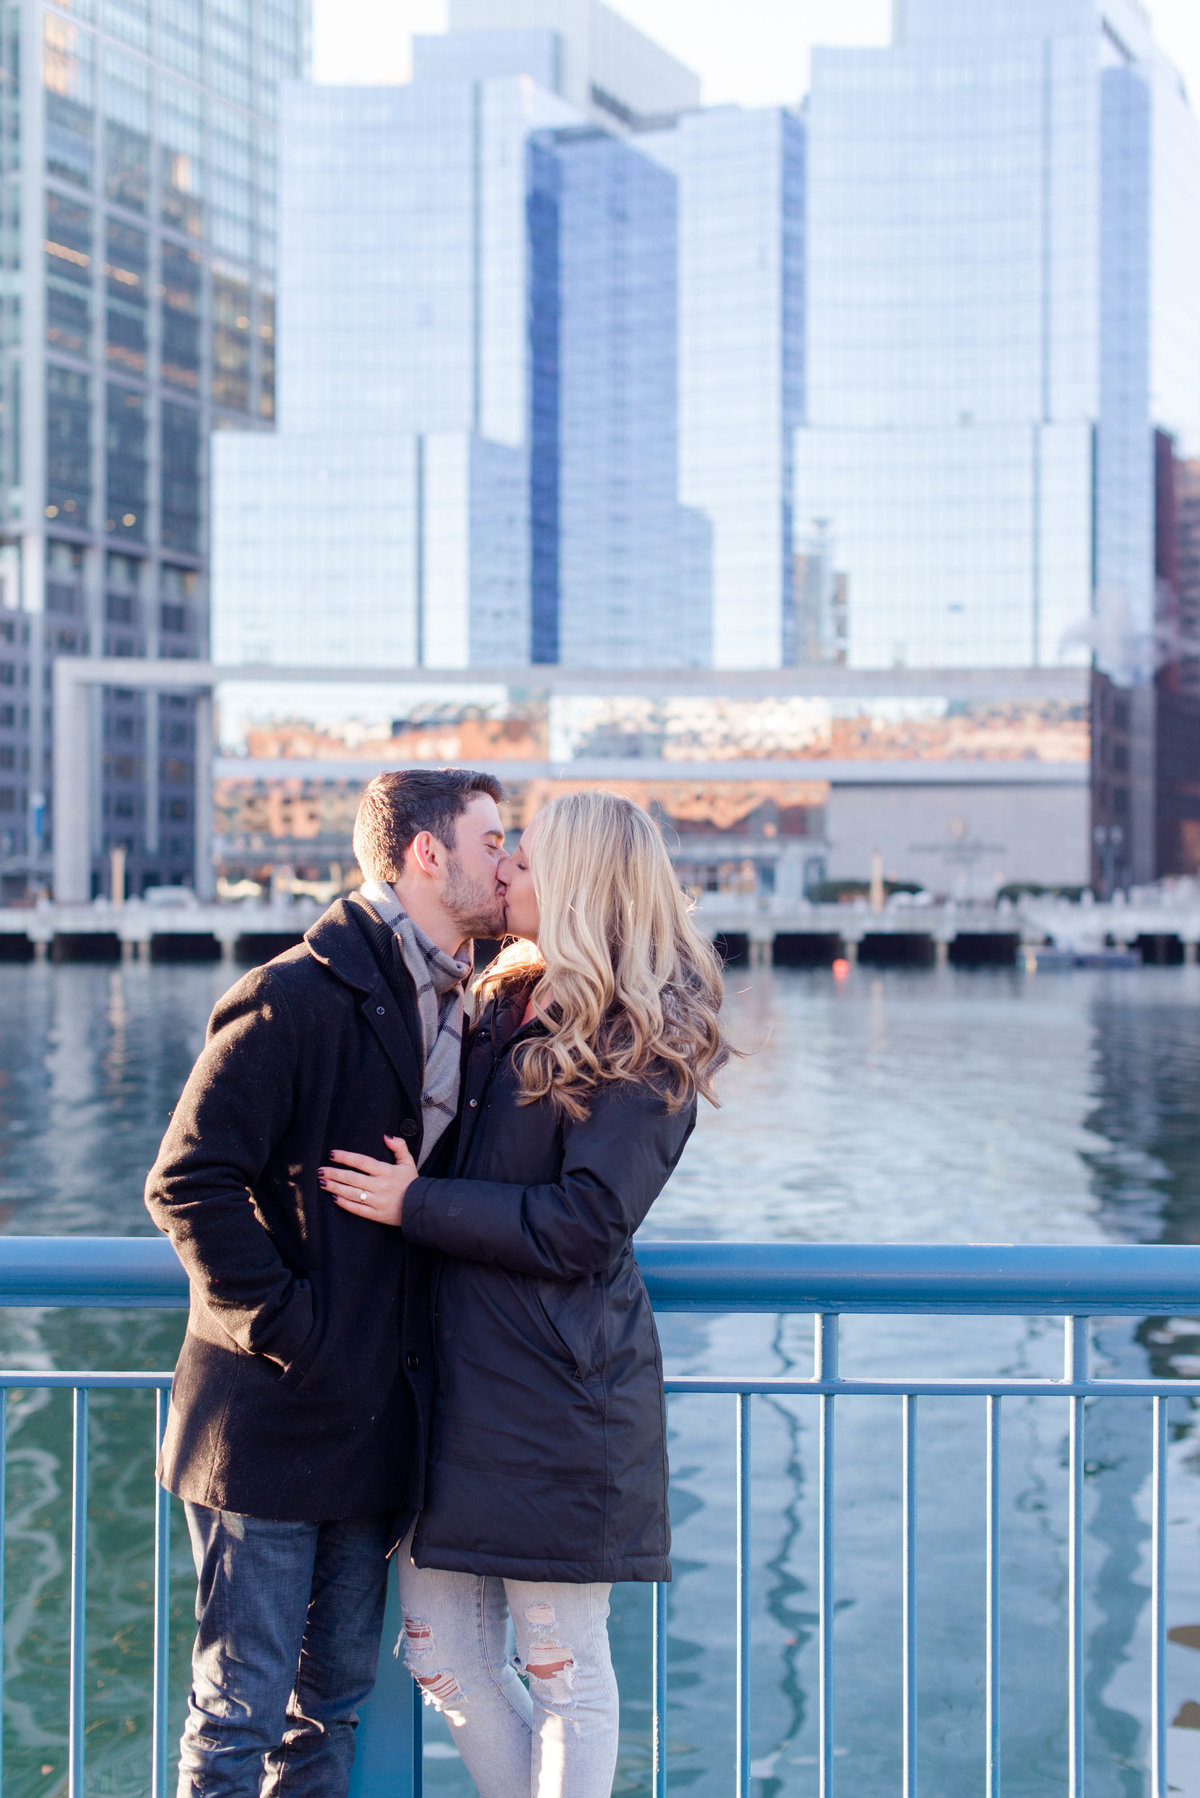 seaport proposal photos in the winter.